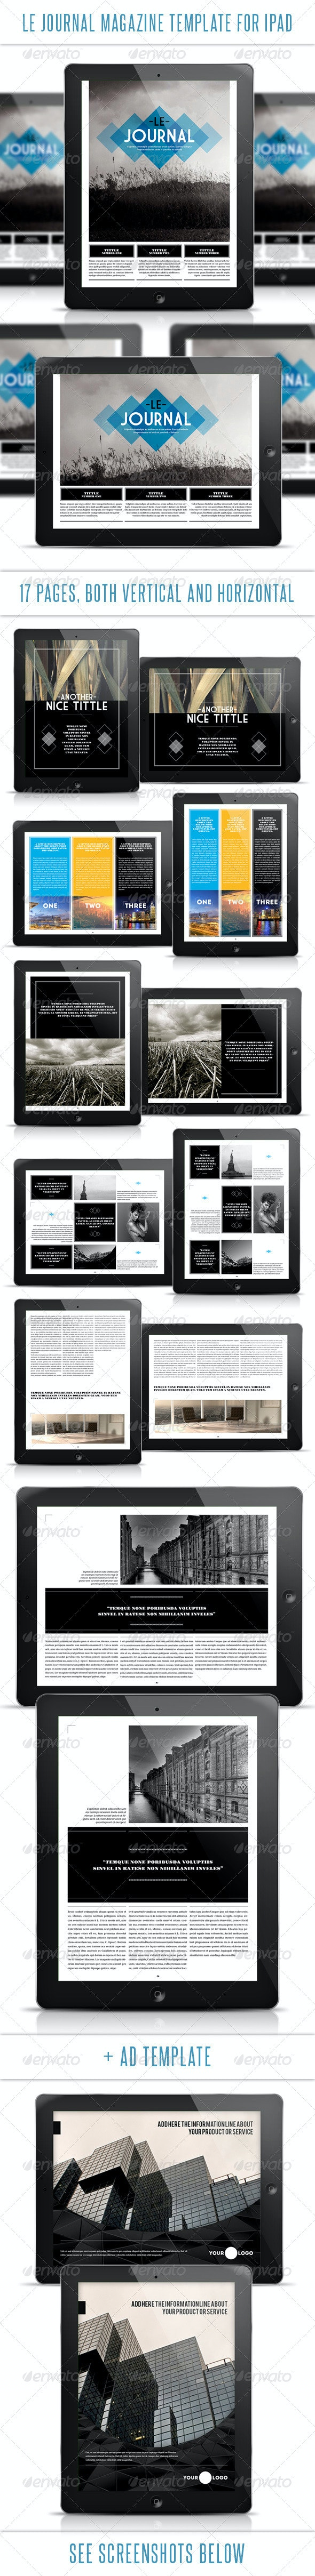 Le Journal Tablet Magazine Template - Digital Magazines ePublishing